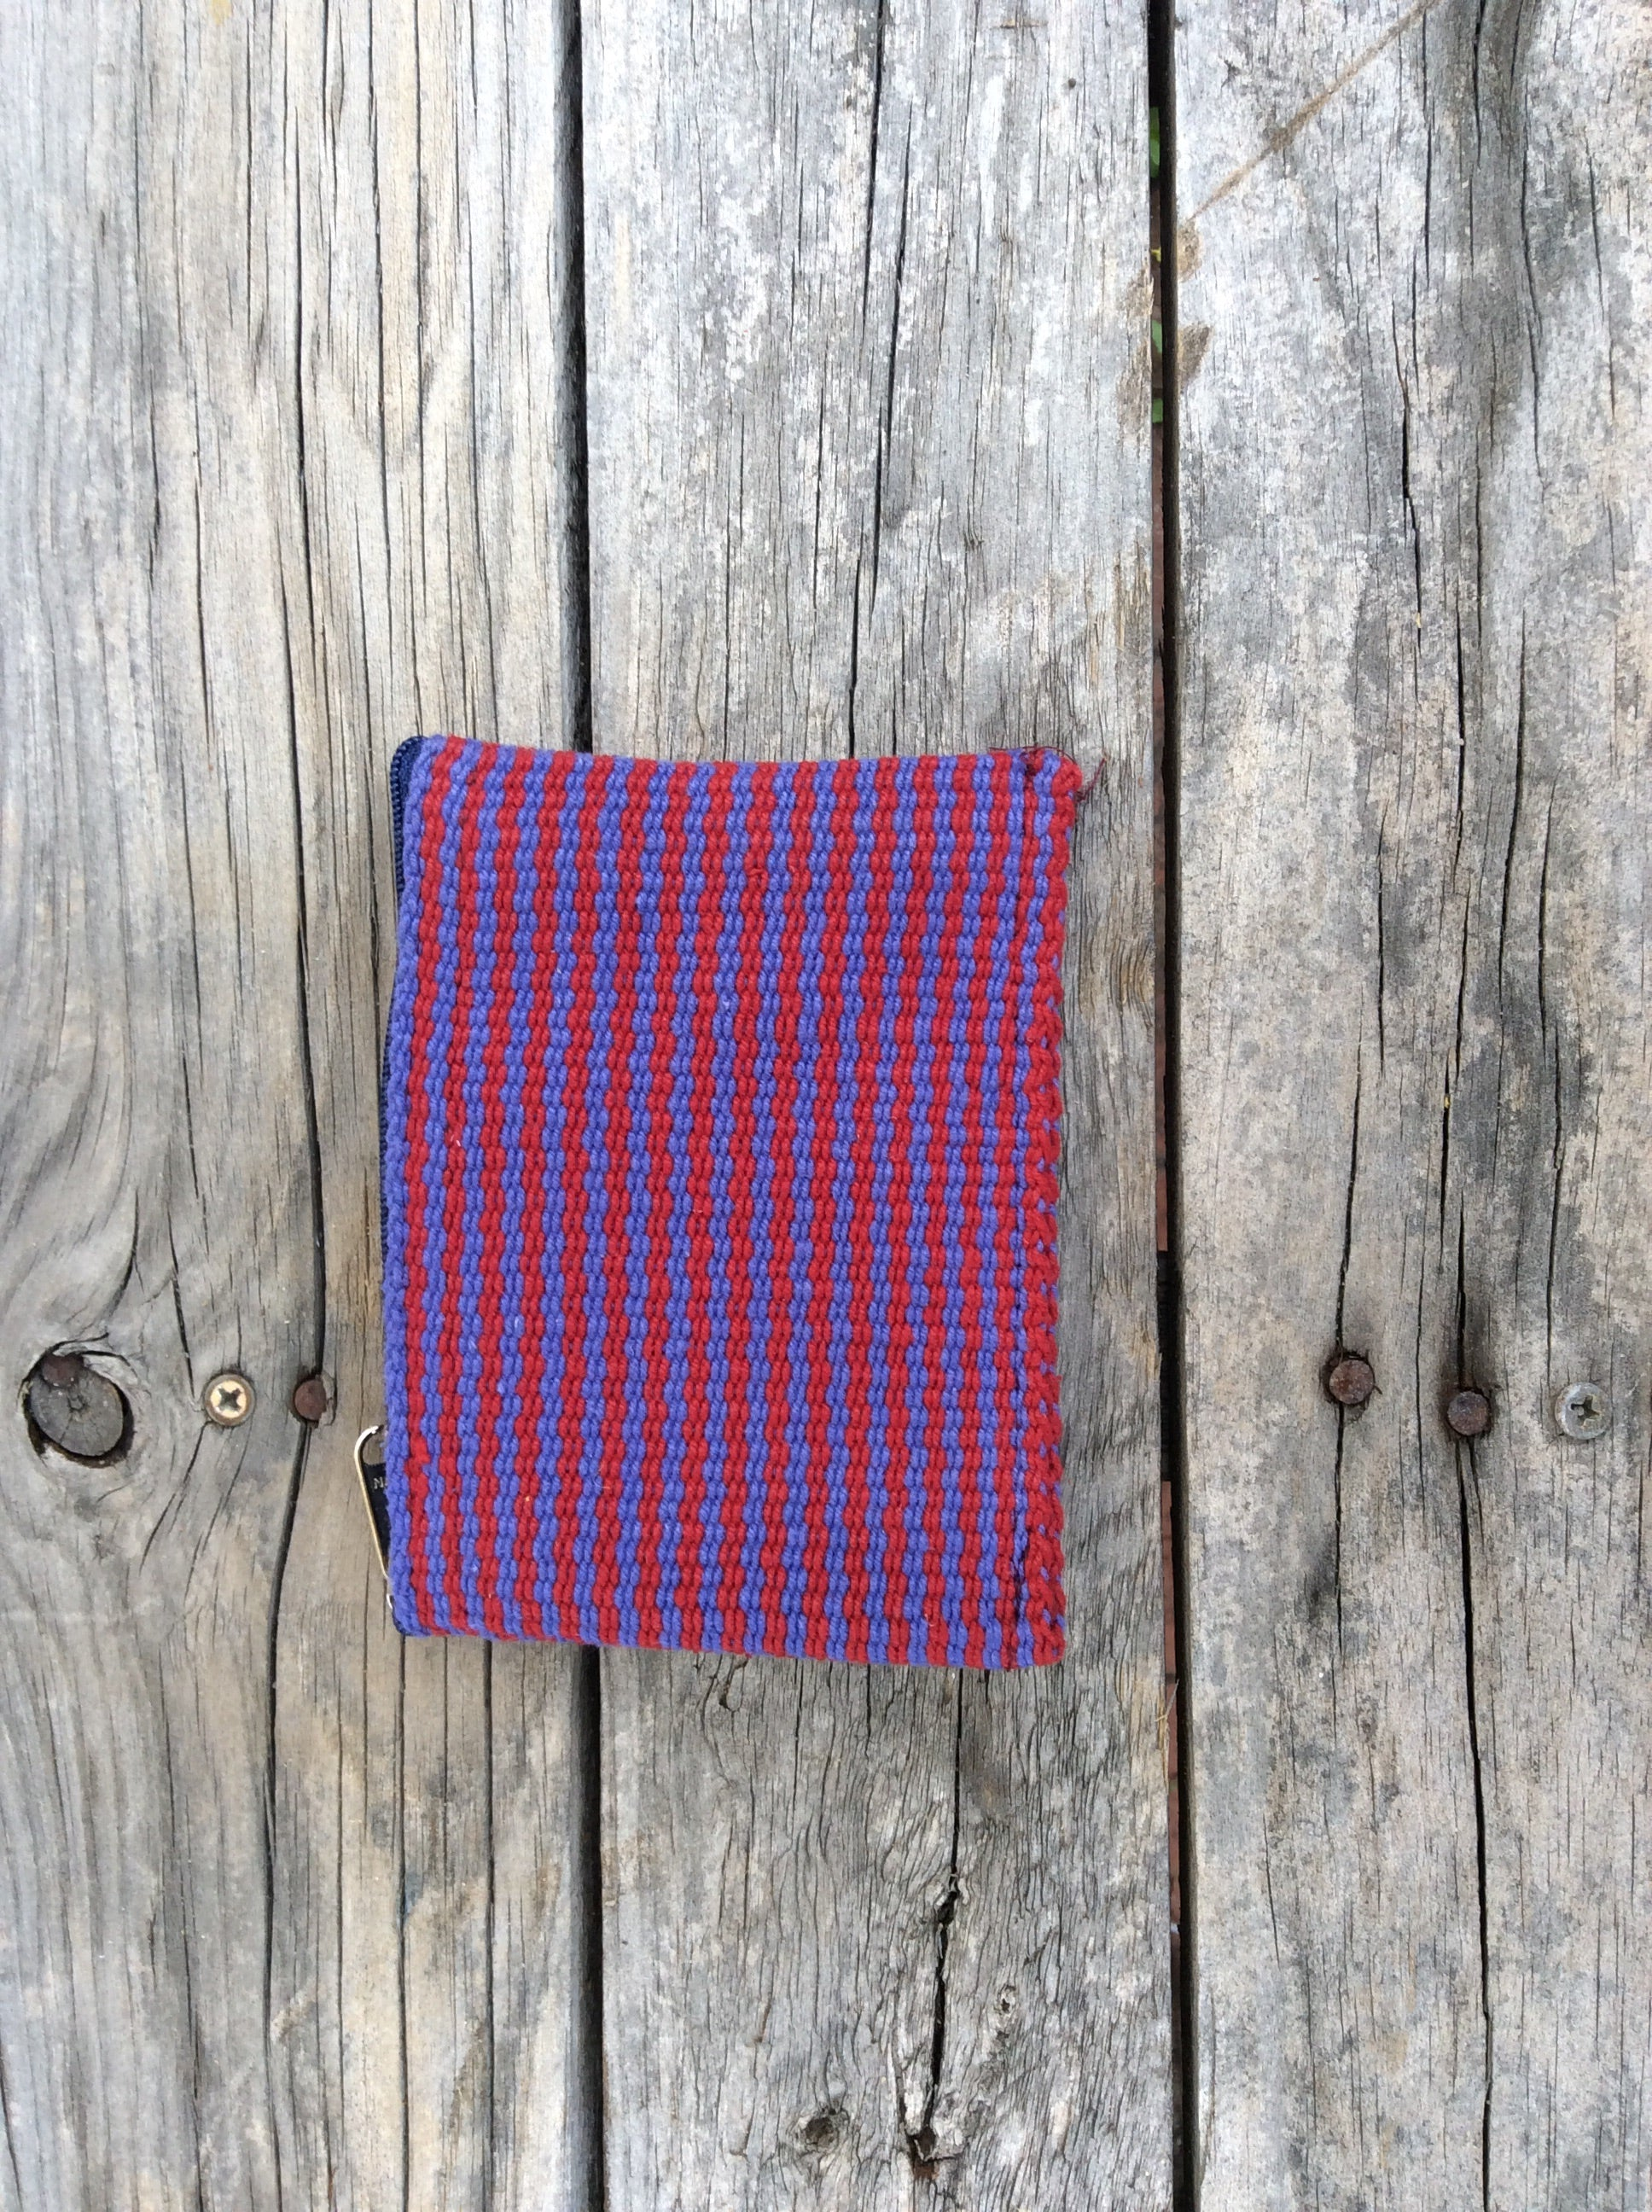 Fair Trade Ethical Hand Woven Cotton Coin Purse